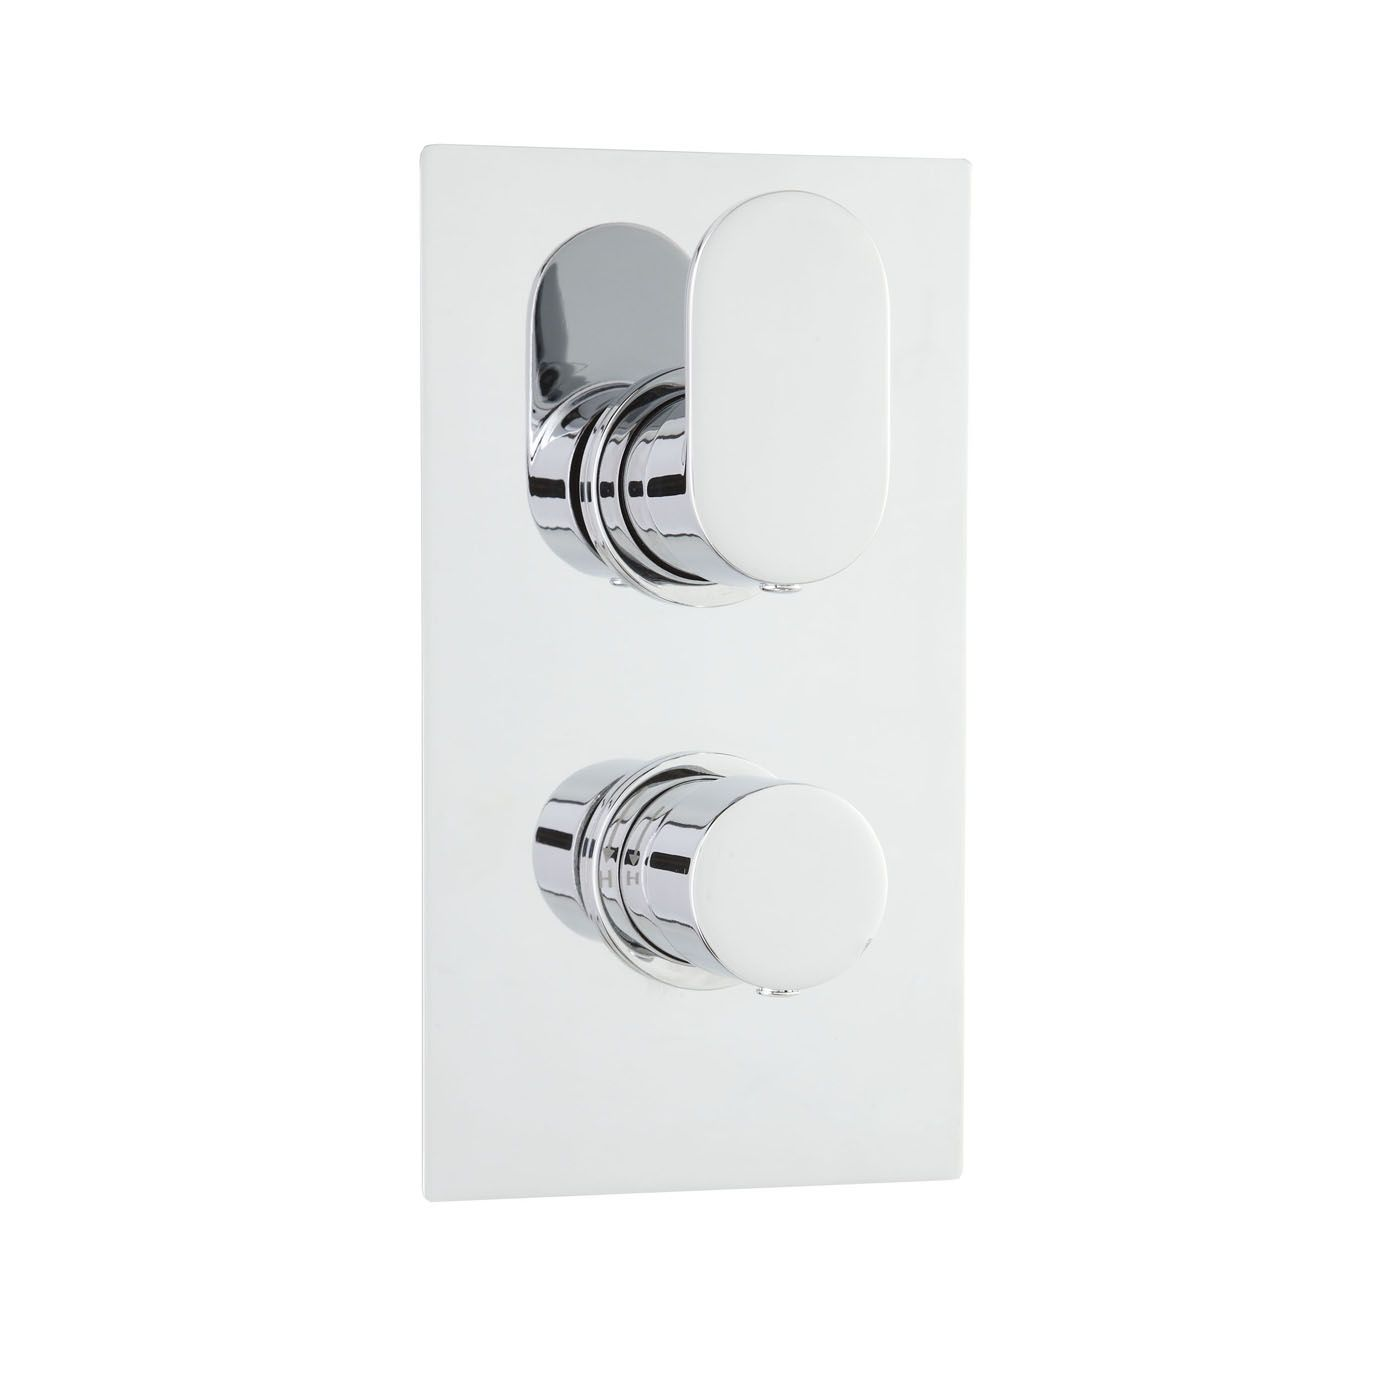 Ratio Concealed Thermostatic Twin Shower Faucet Valve 1 Outlet Option